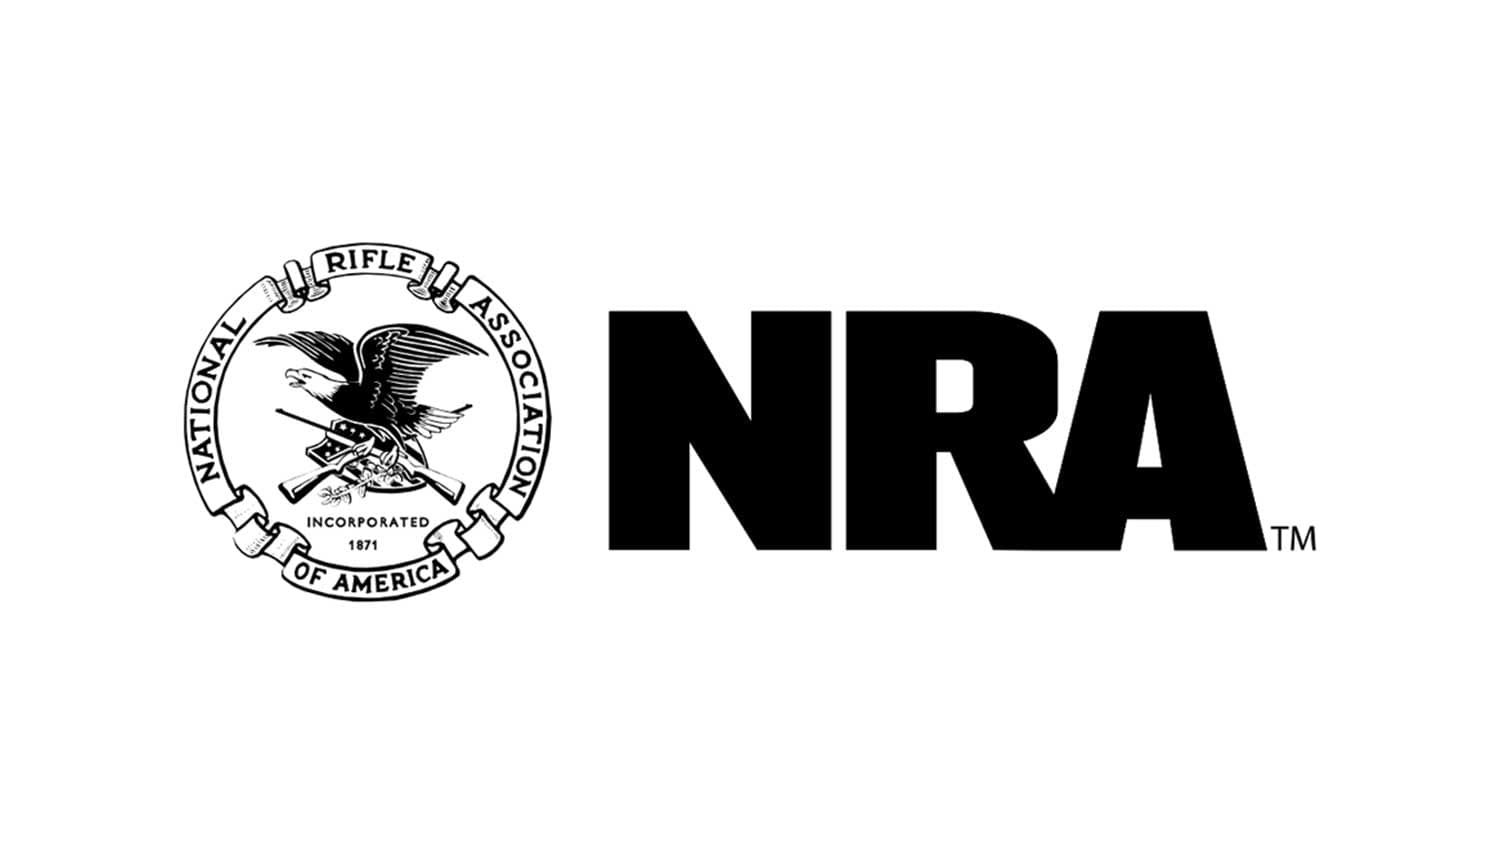 American Rifleman | NRA Publications Editorial Director John Zent Retires